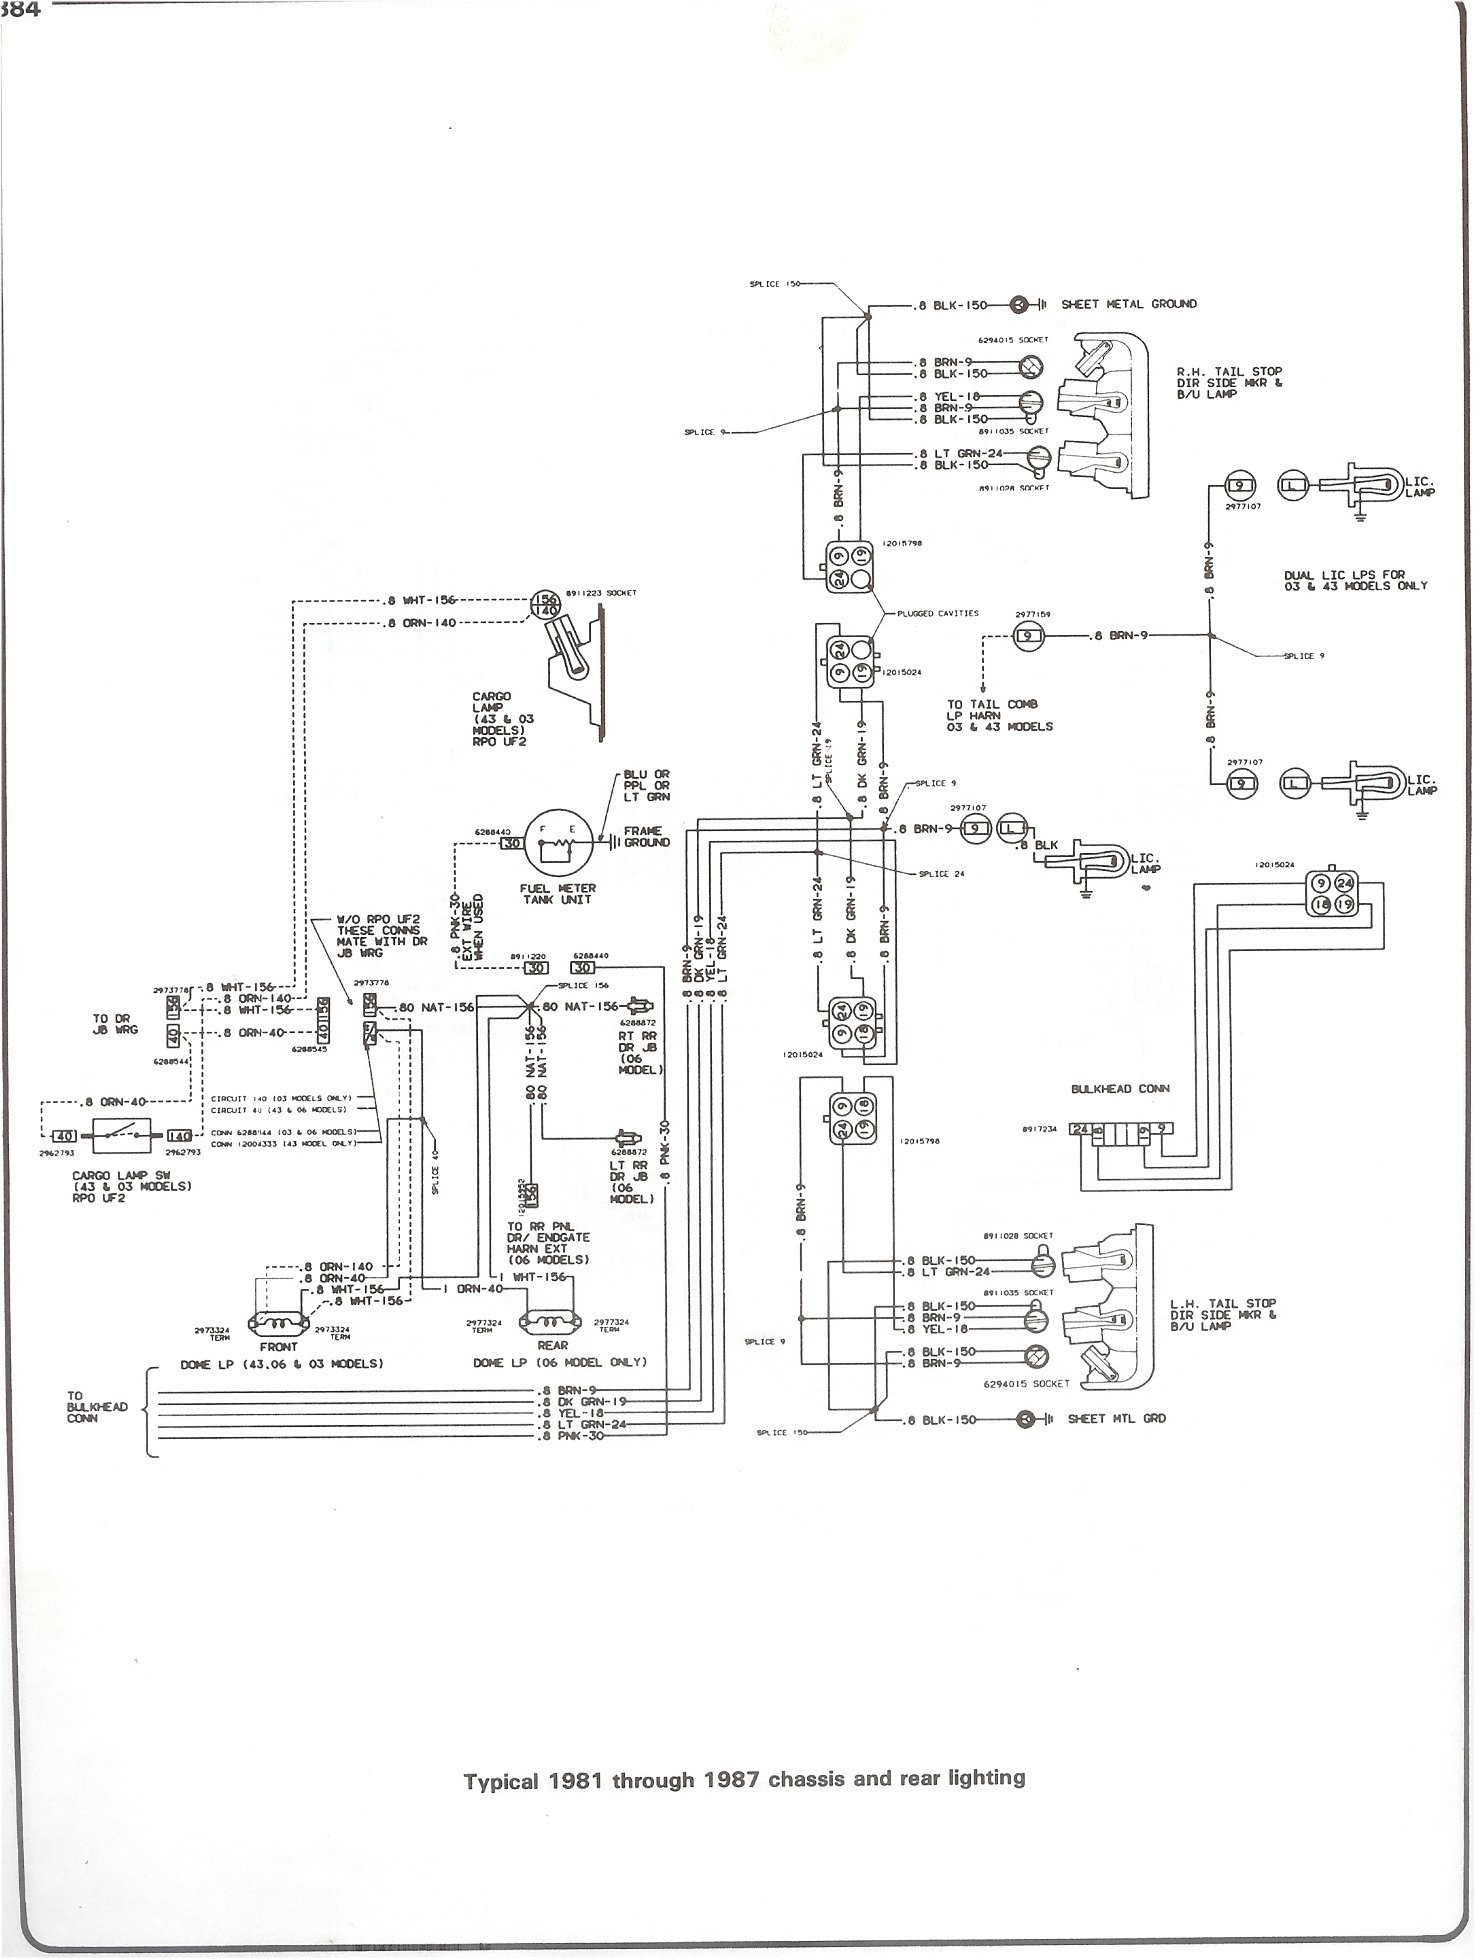 1987 Chevy Truck Fuse Box Diagram